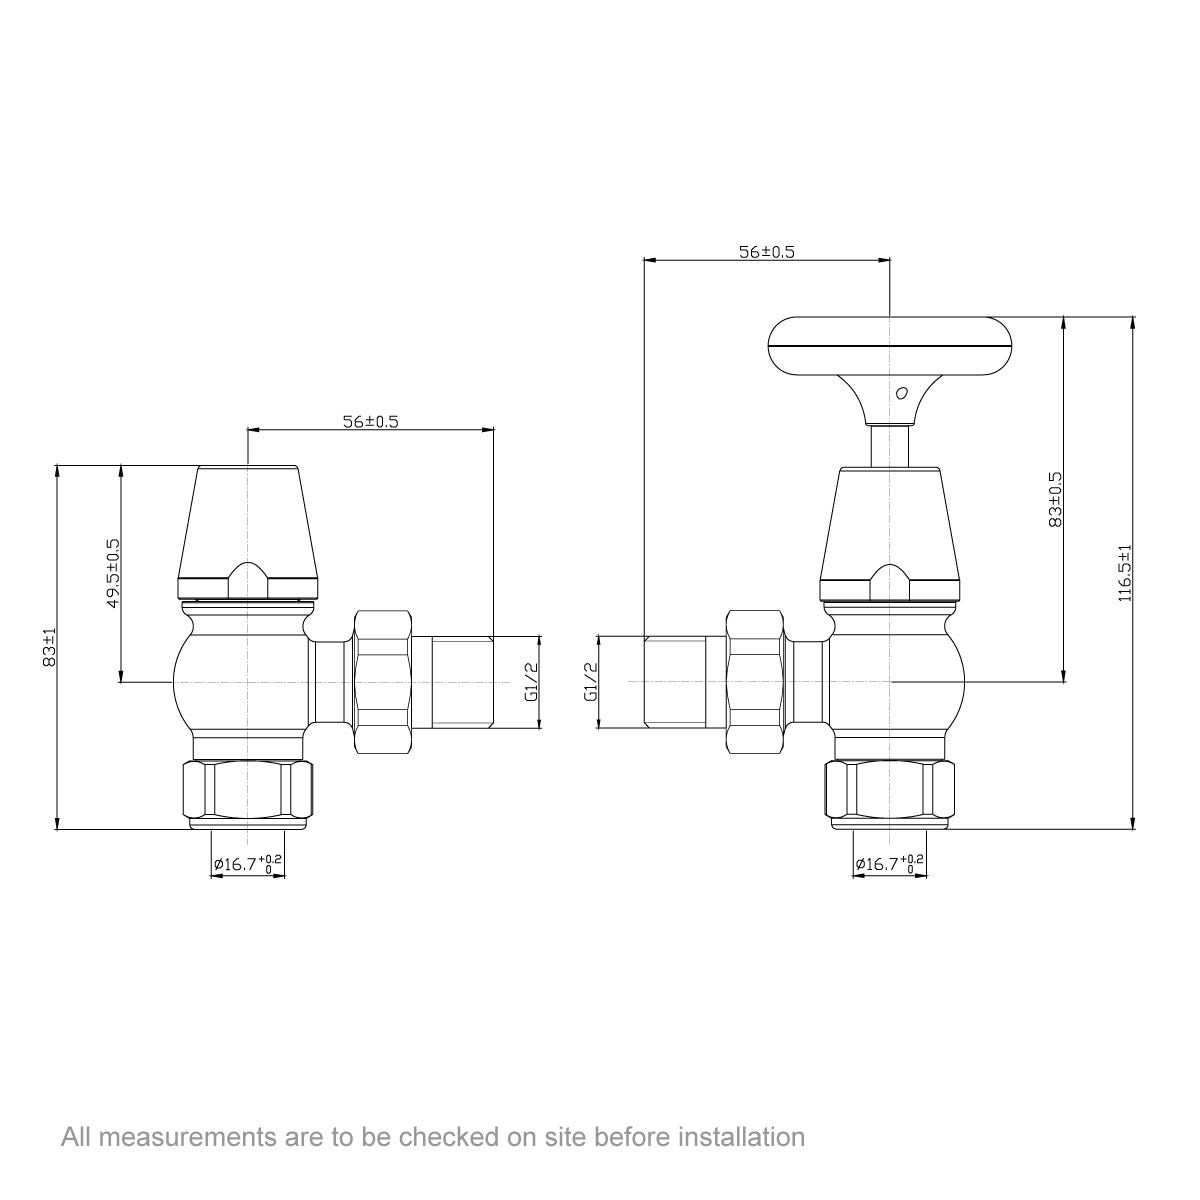 Dimensions for The Bath Co. Traditional angled radiator valves with brown handle